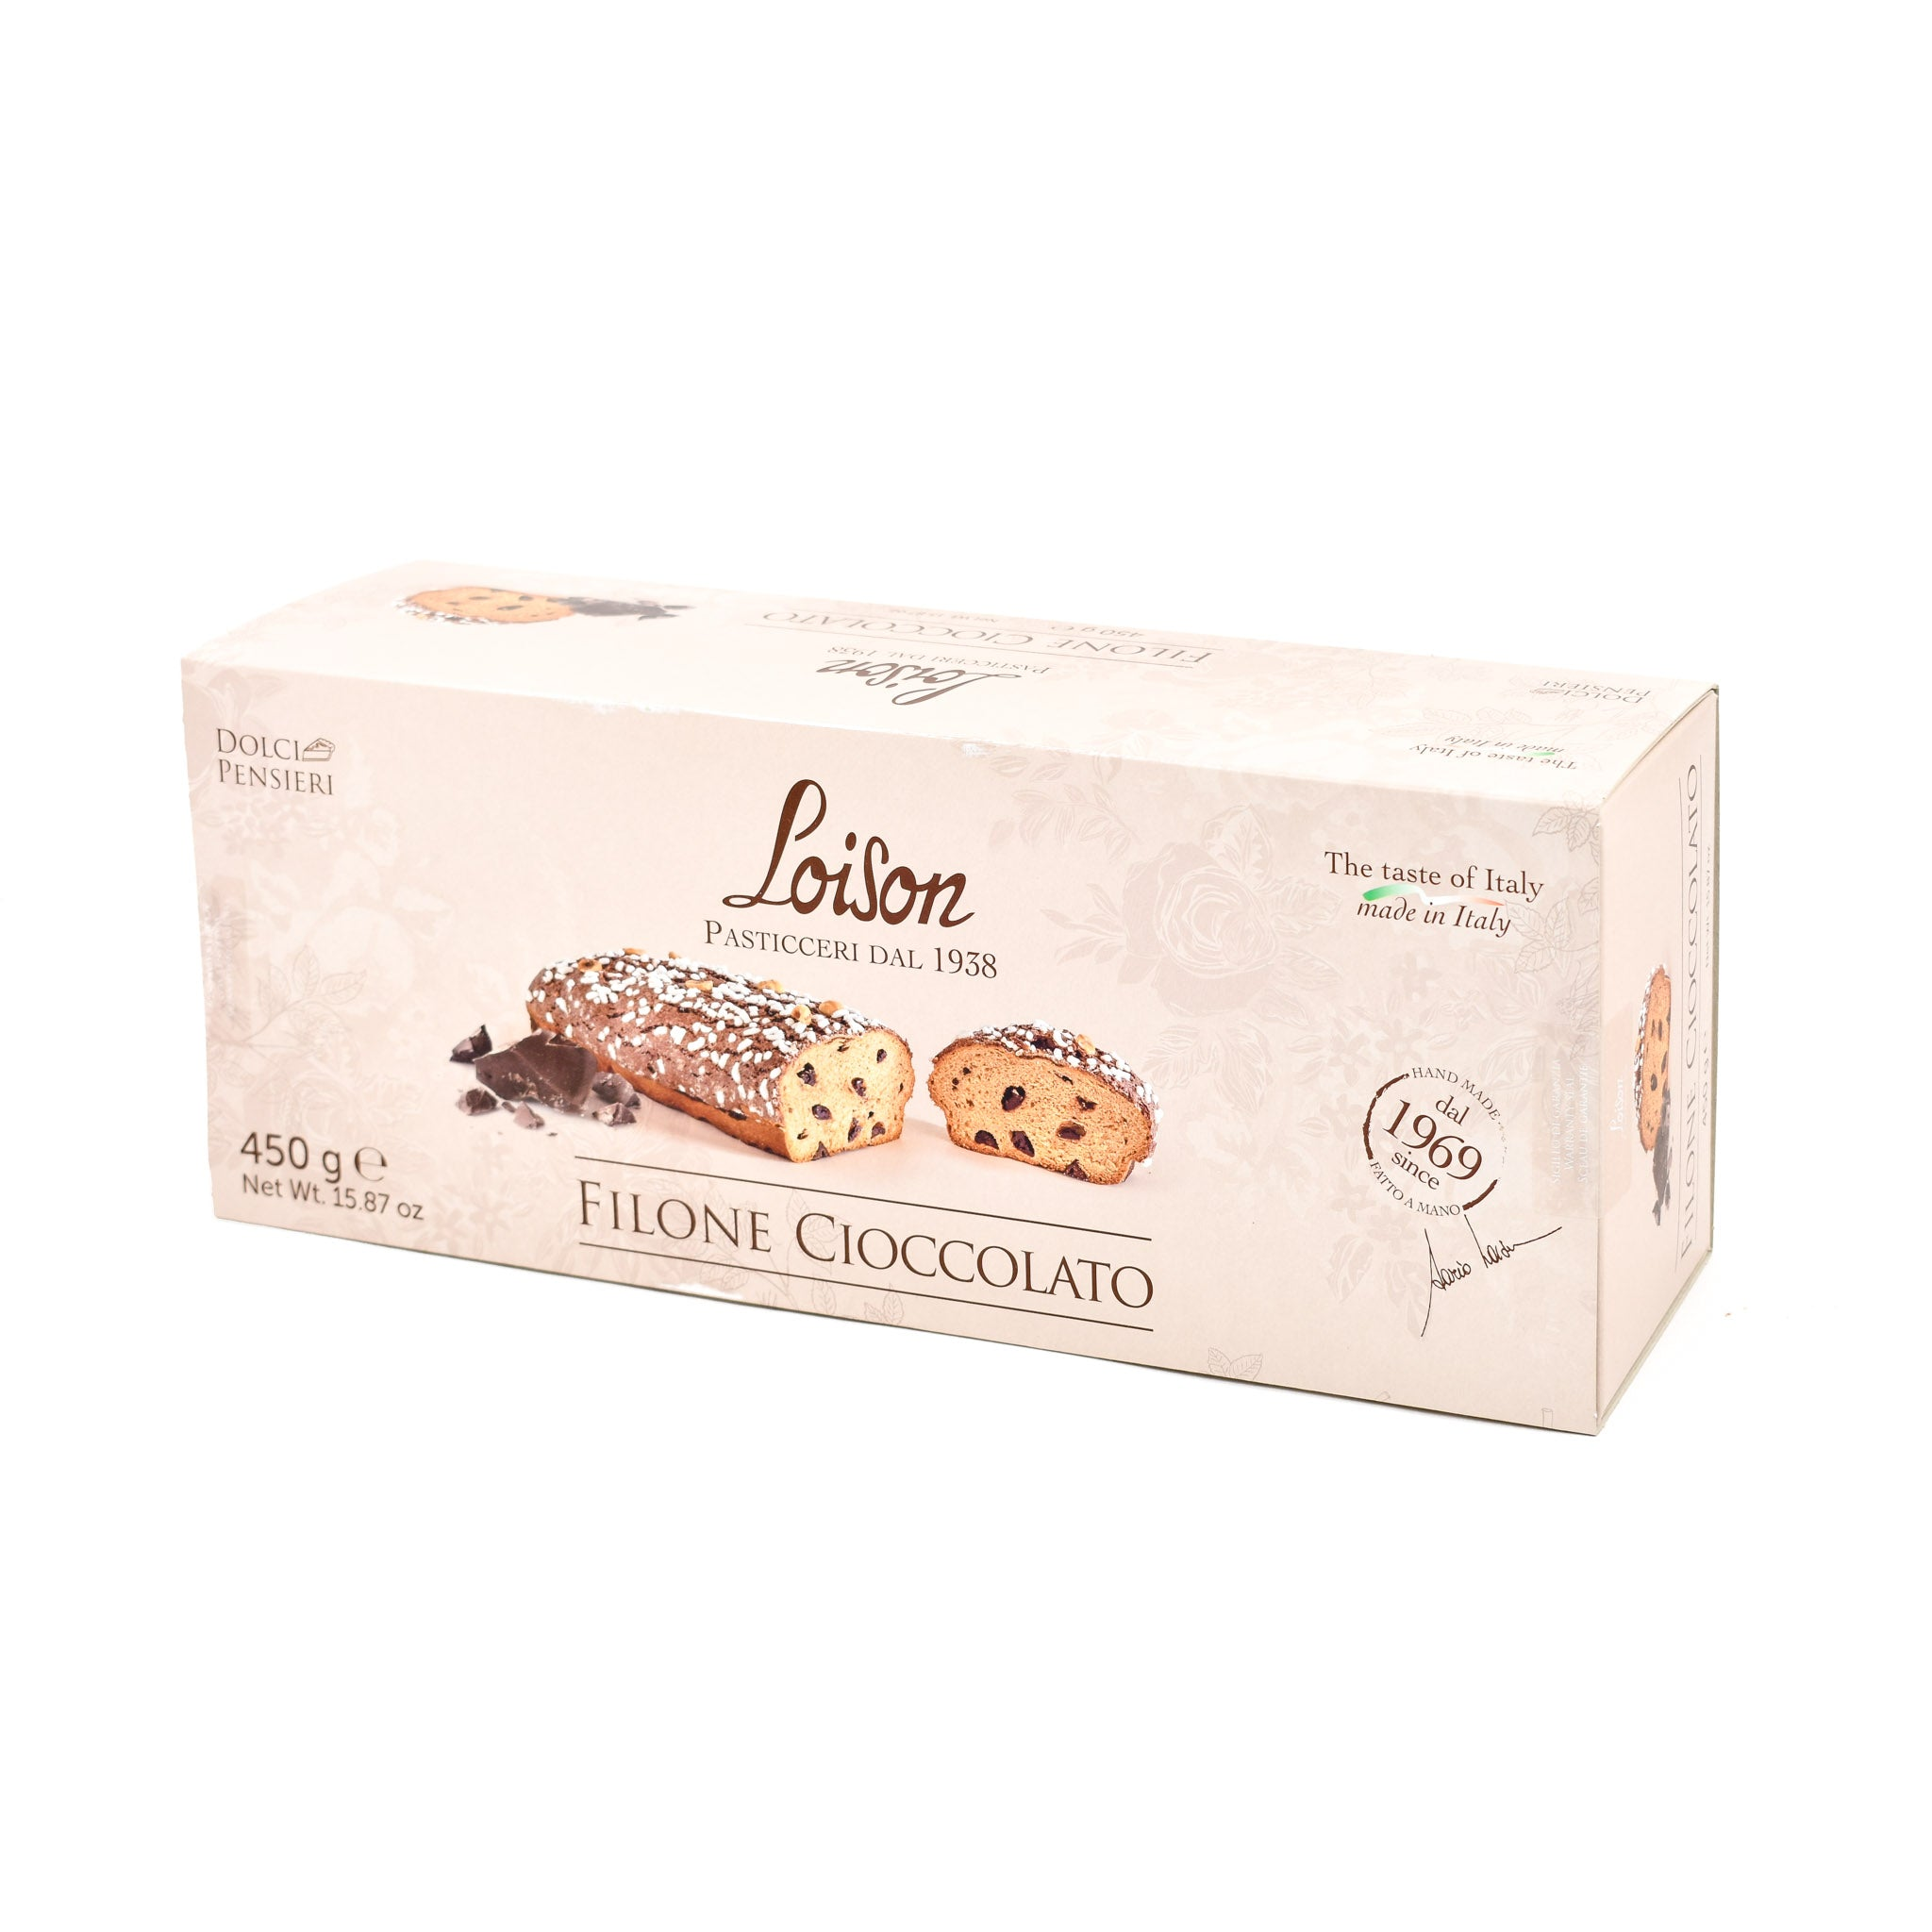 Loison Chocolate Filone 450g Ingredients Chocolate Bars & Confectionery Italian Food